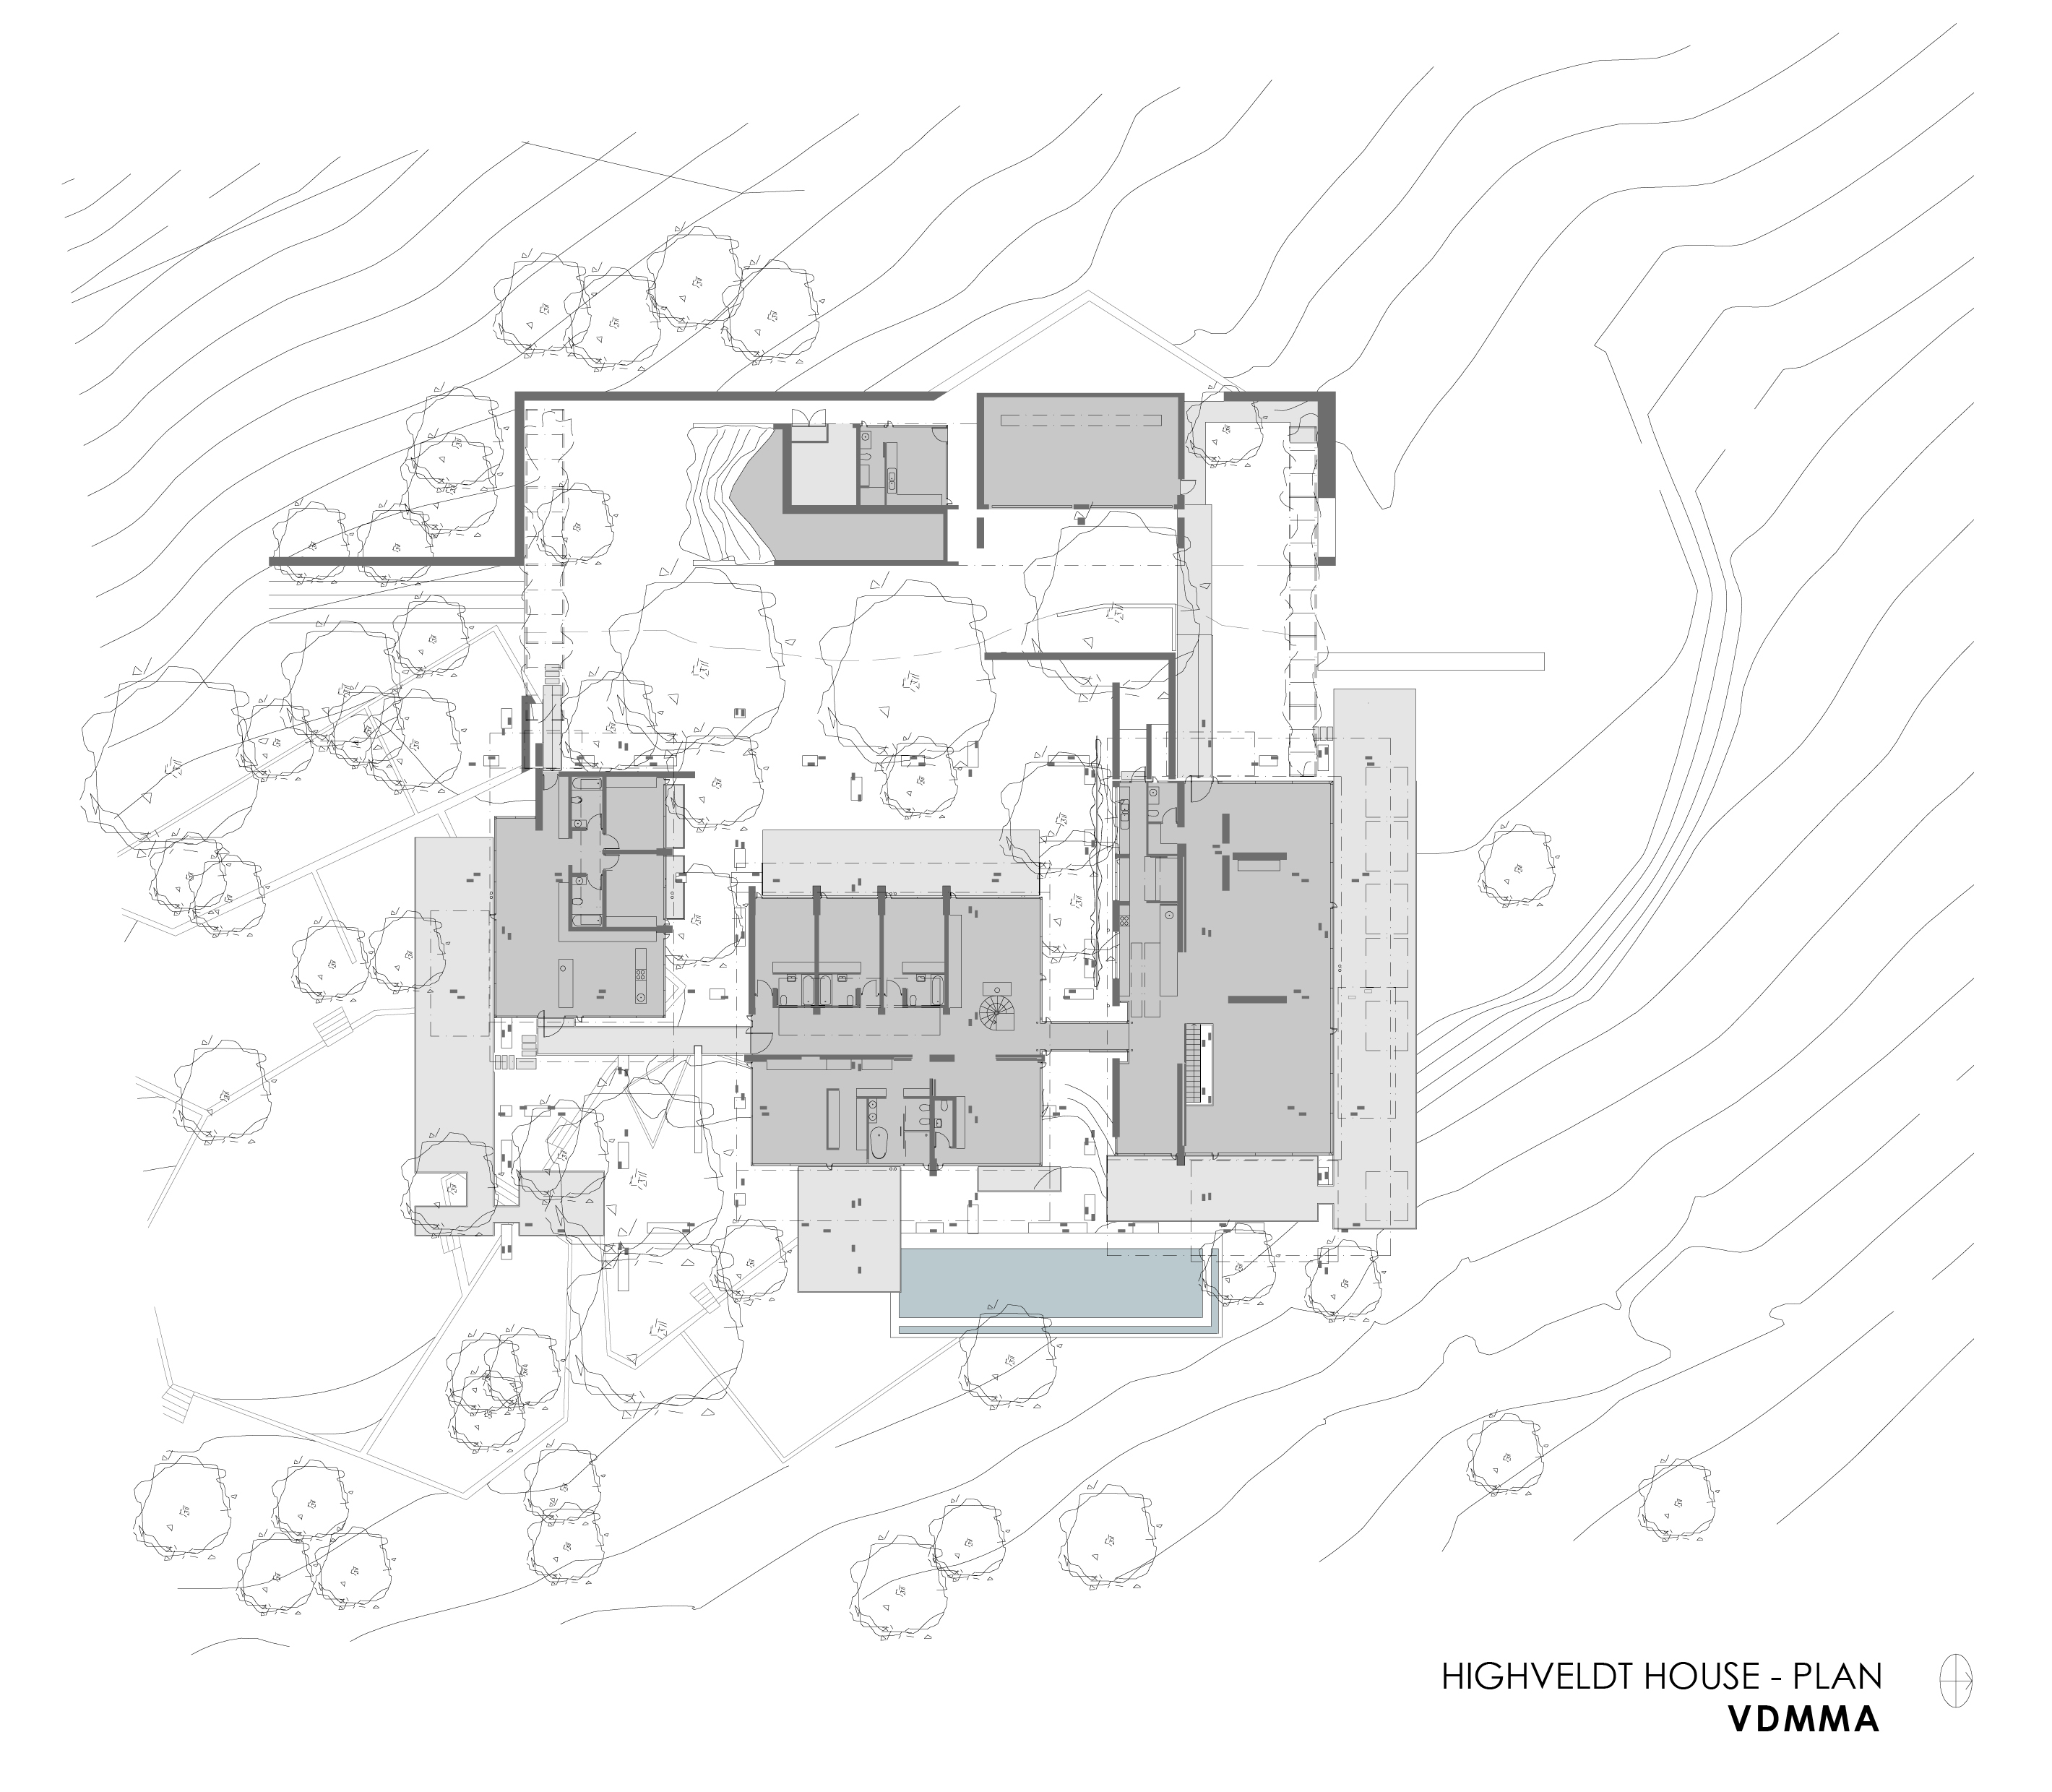 HIGHVELDT HOUSE plan